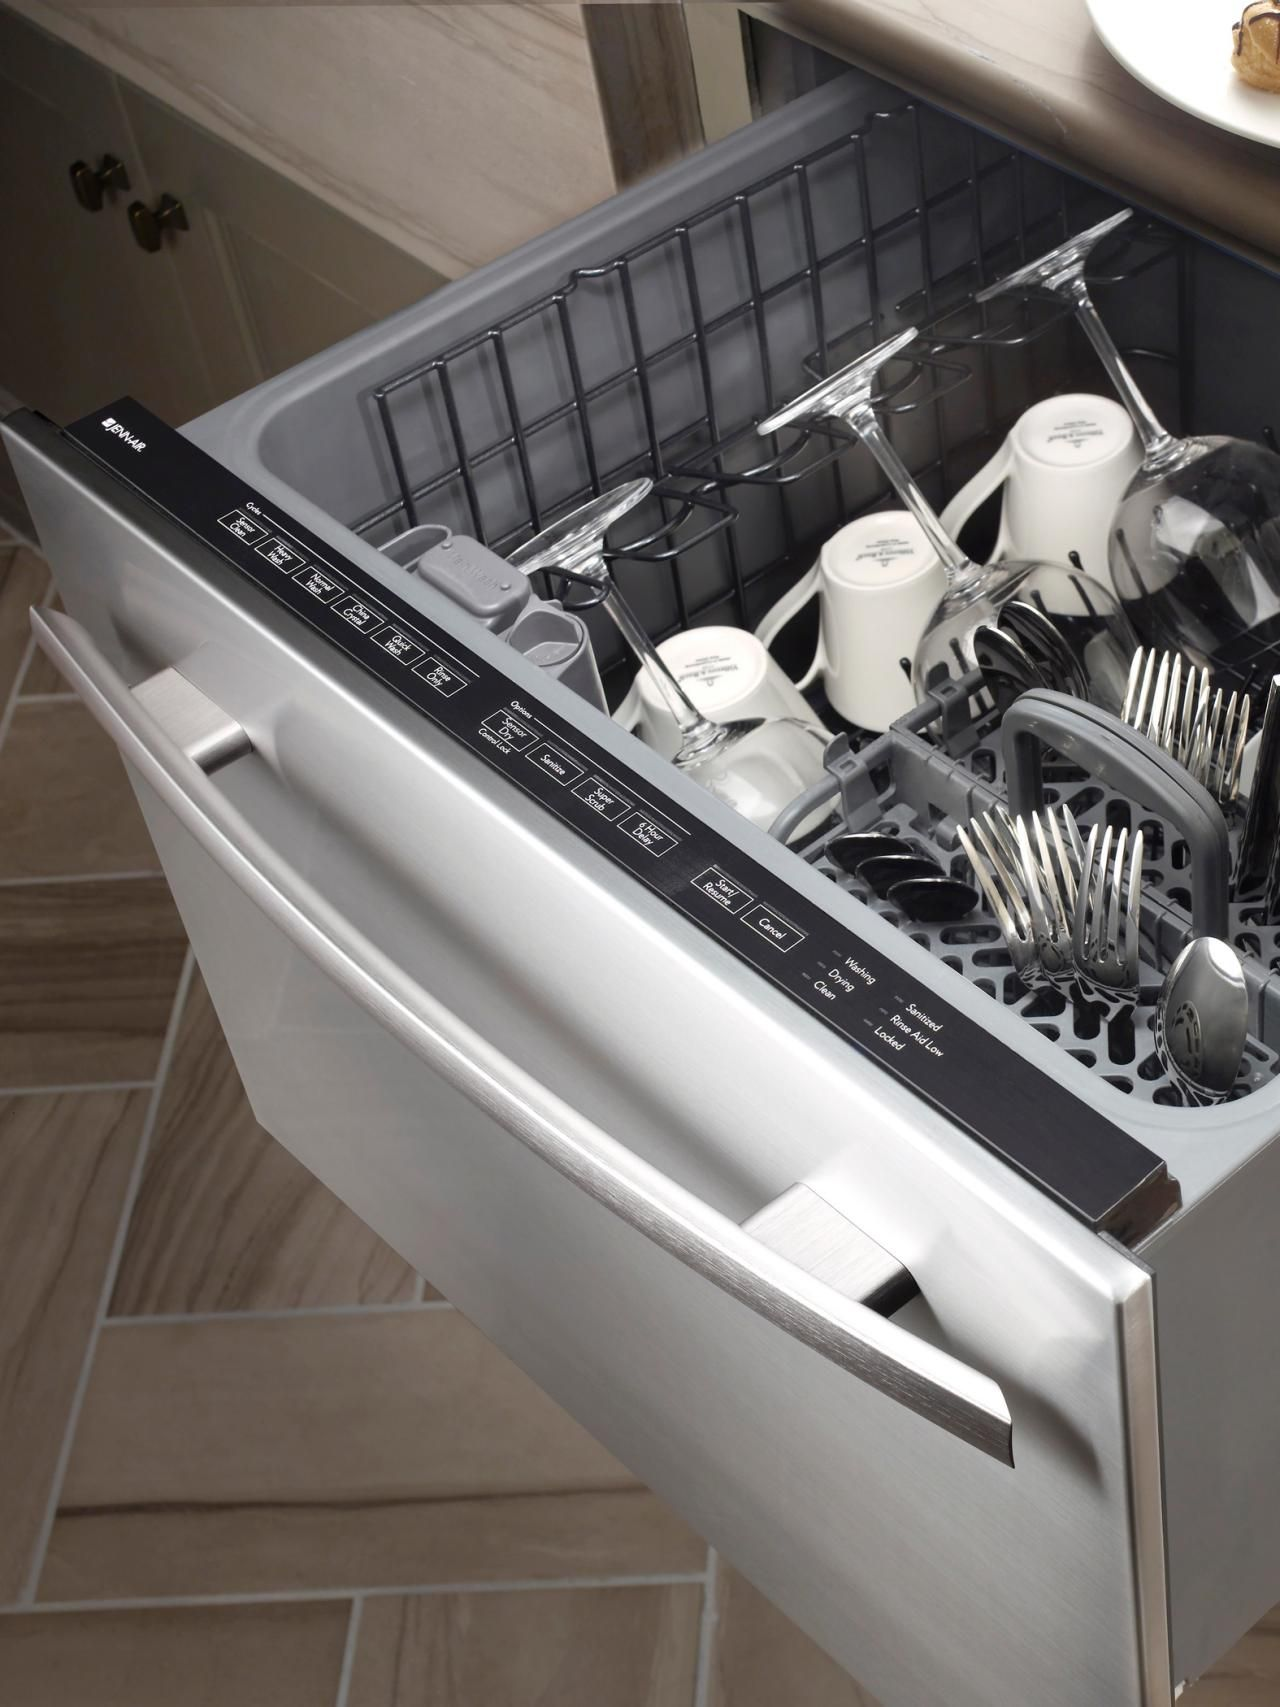 cgi style rack inch drawer bin ajmadison integrated fully with stainless ge dishwasher